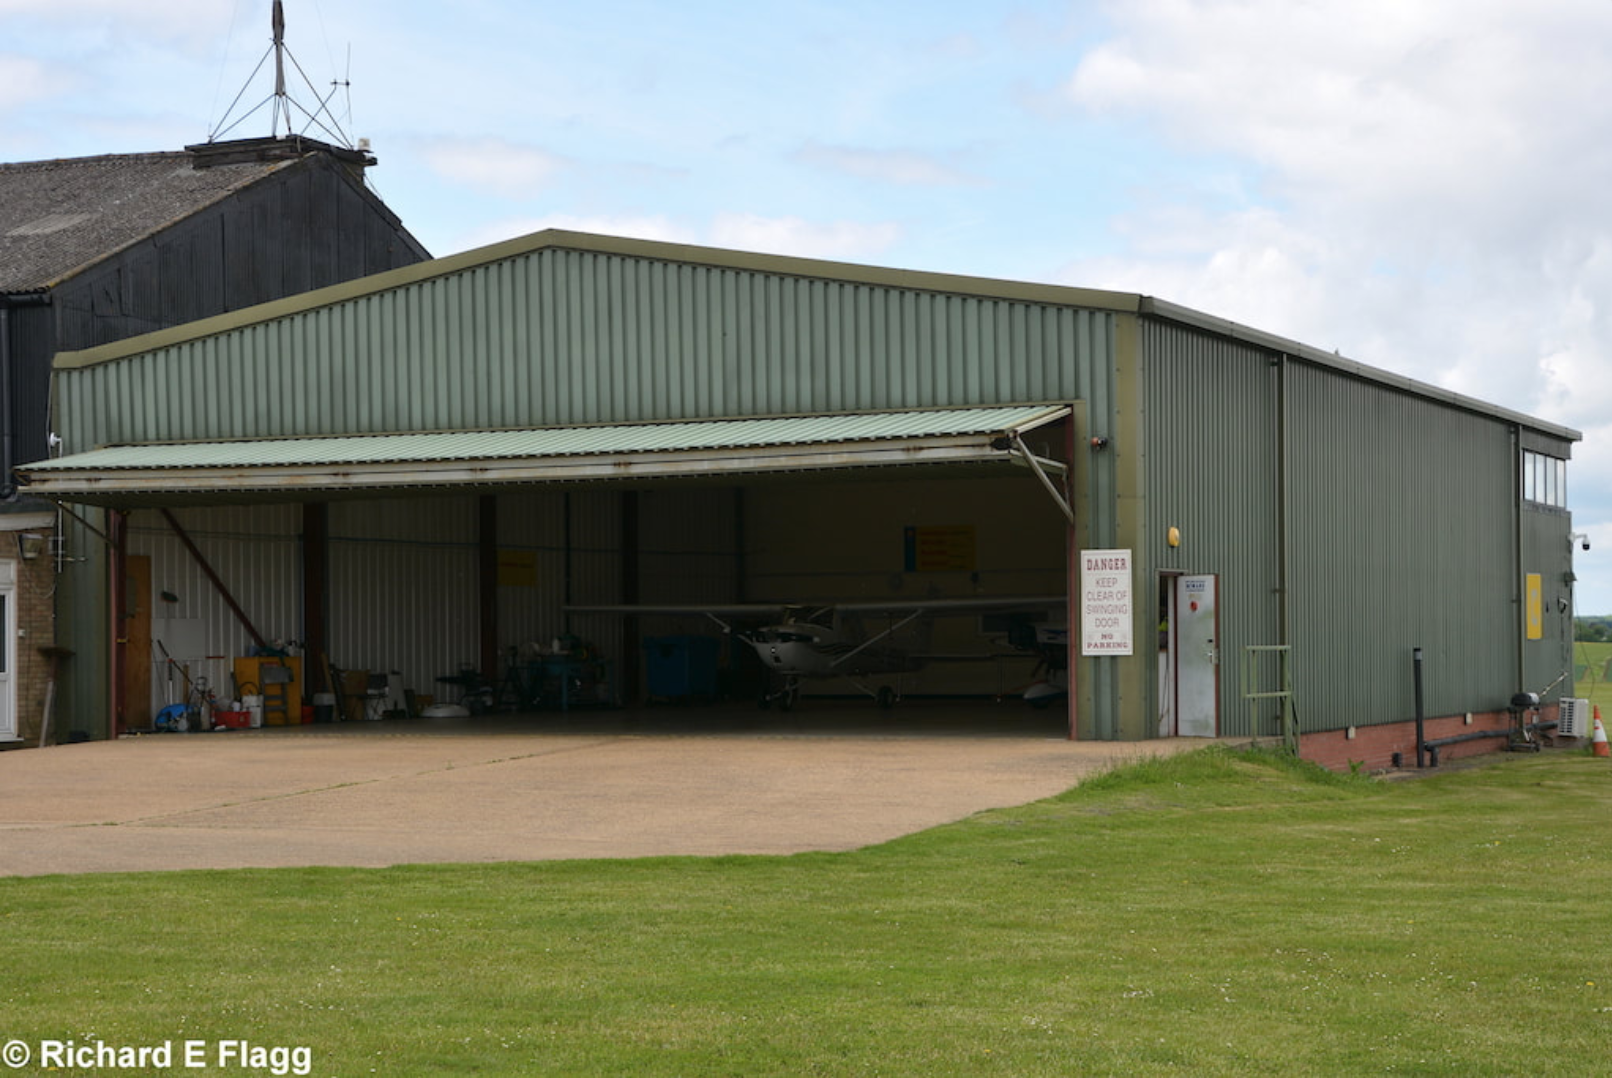 005Airfield Hangar, Offices & Control Room 3 - 23 May 2017.png